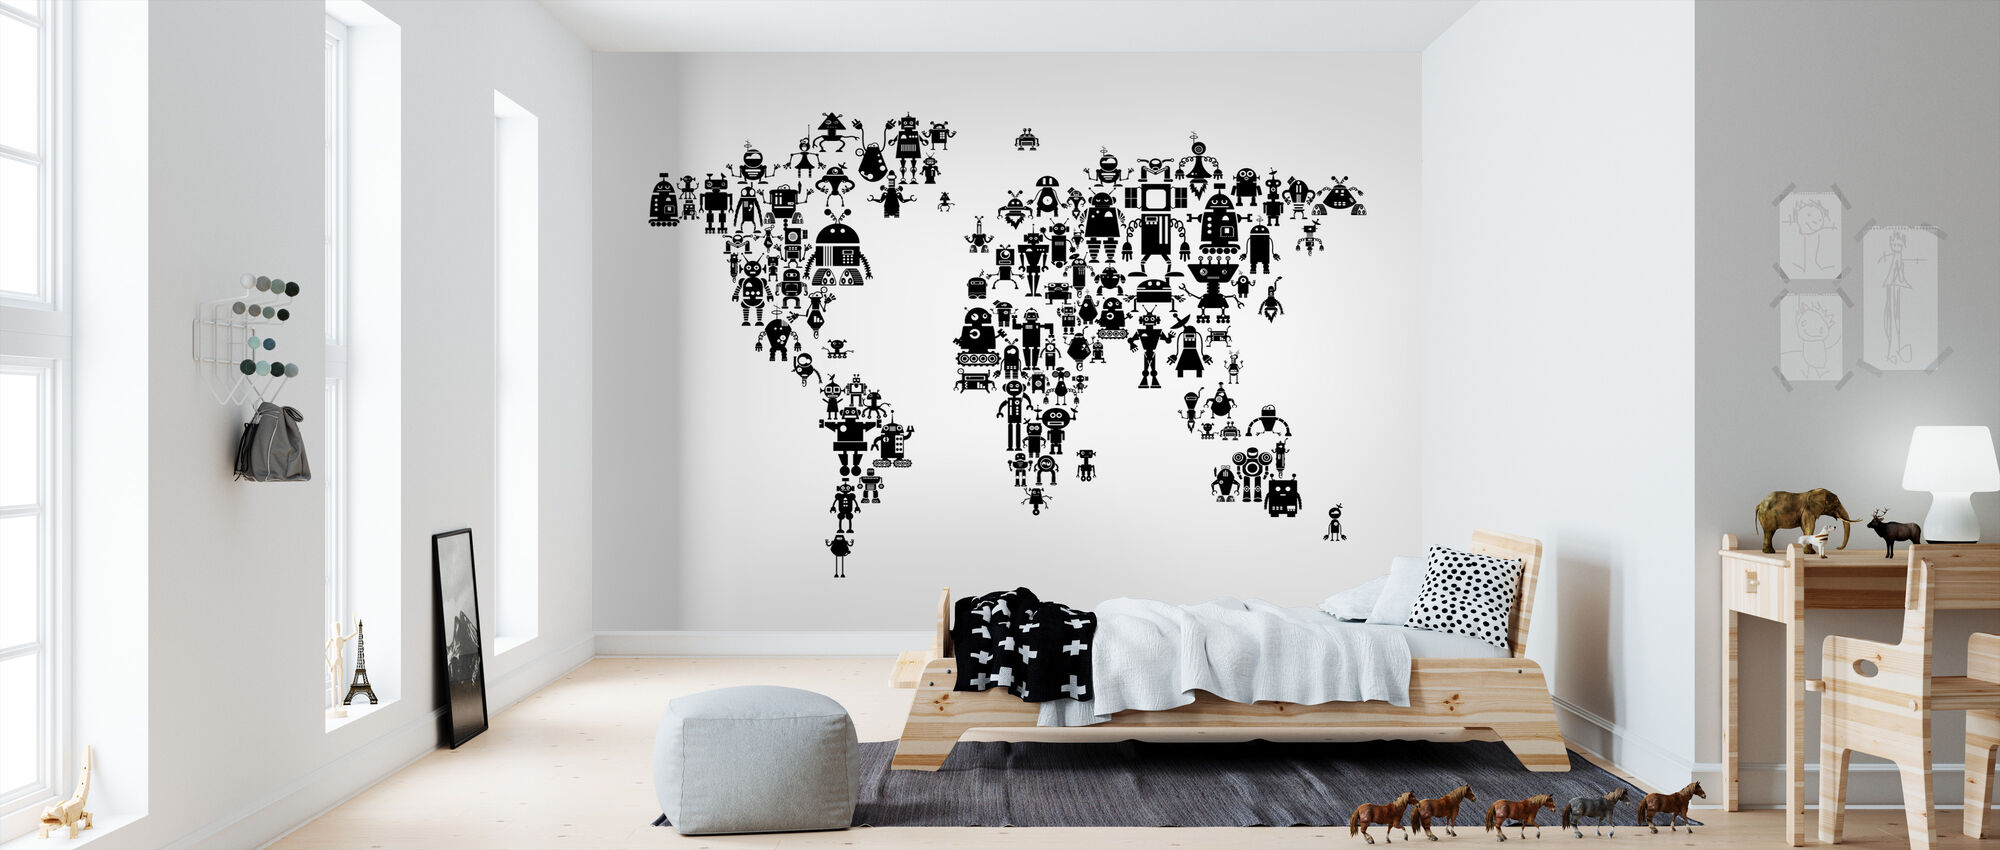 Robots World Map Black - Wallpaper - Kids Room